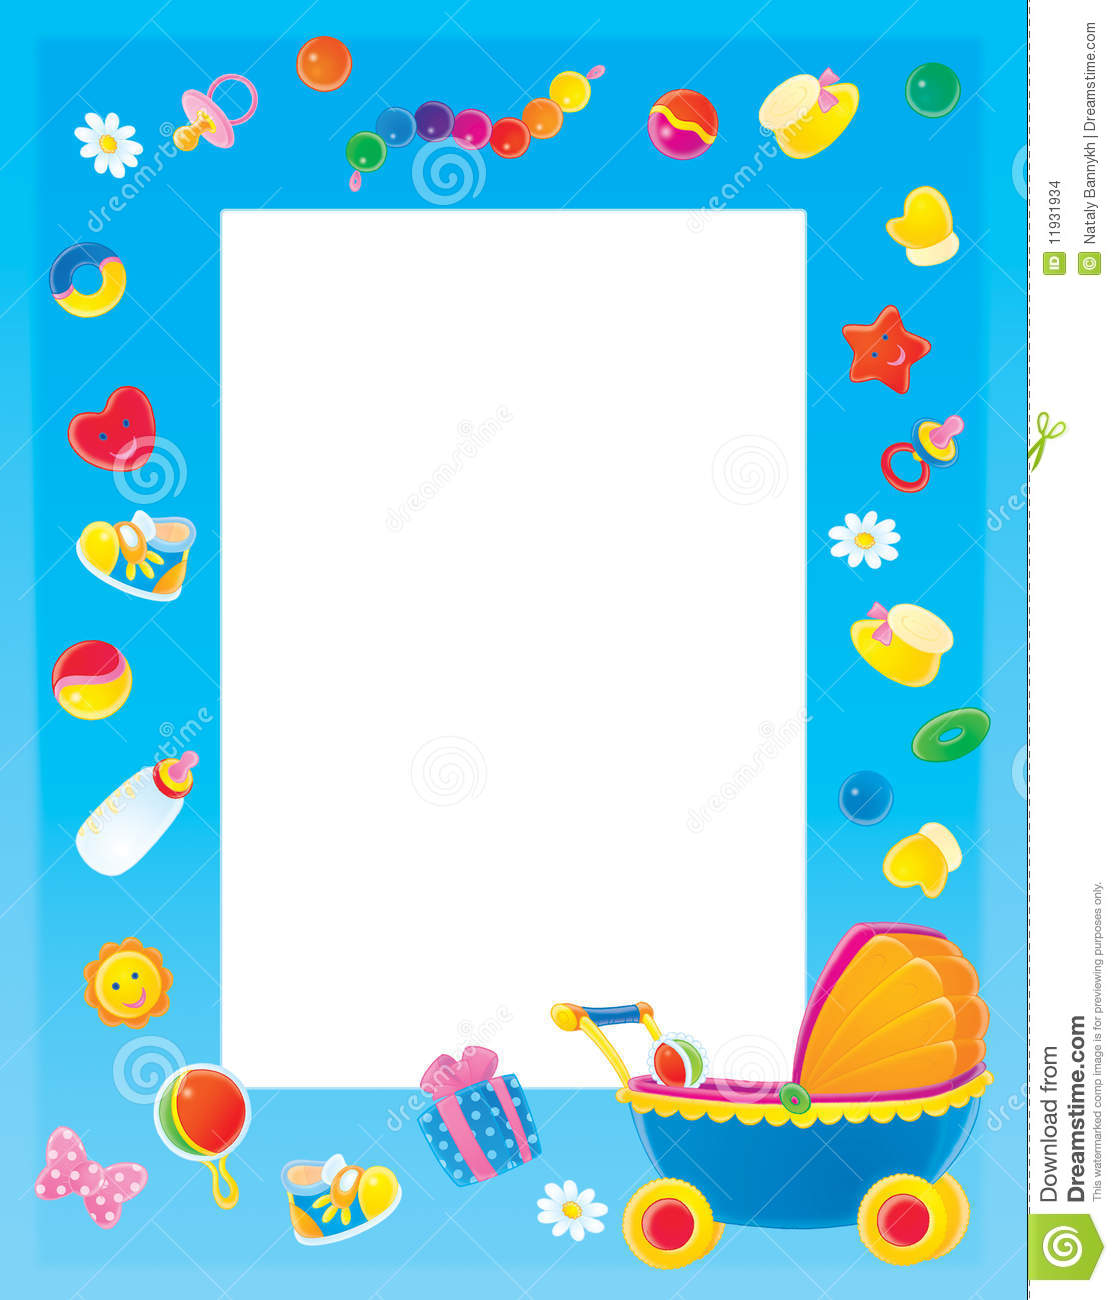 Colorful Page Borders And Frames Colorful border for children's